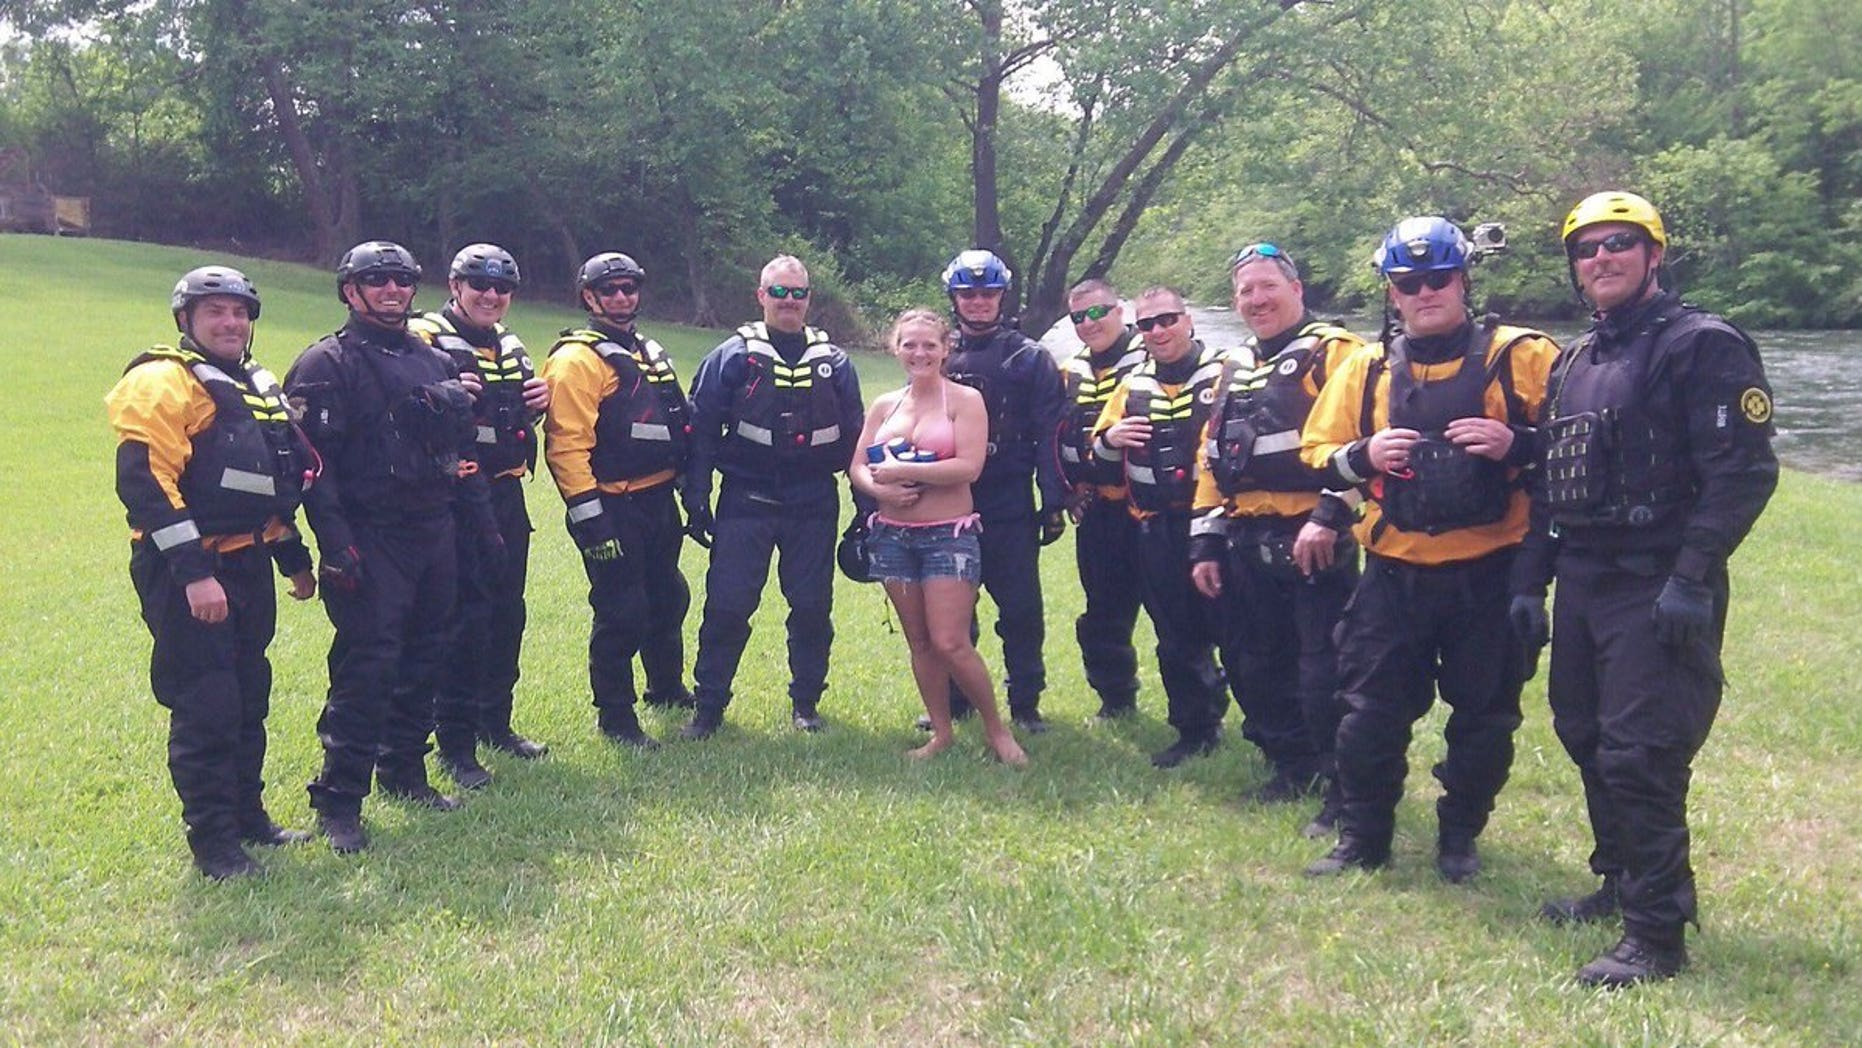 The NYPD was training at the river in North Carolina before the rescue.